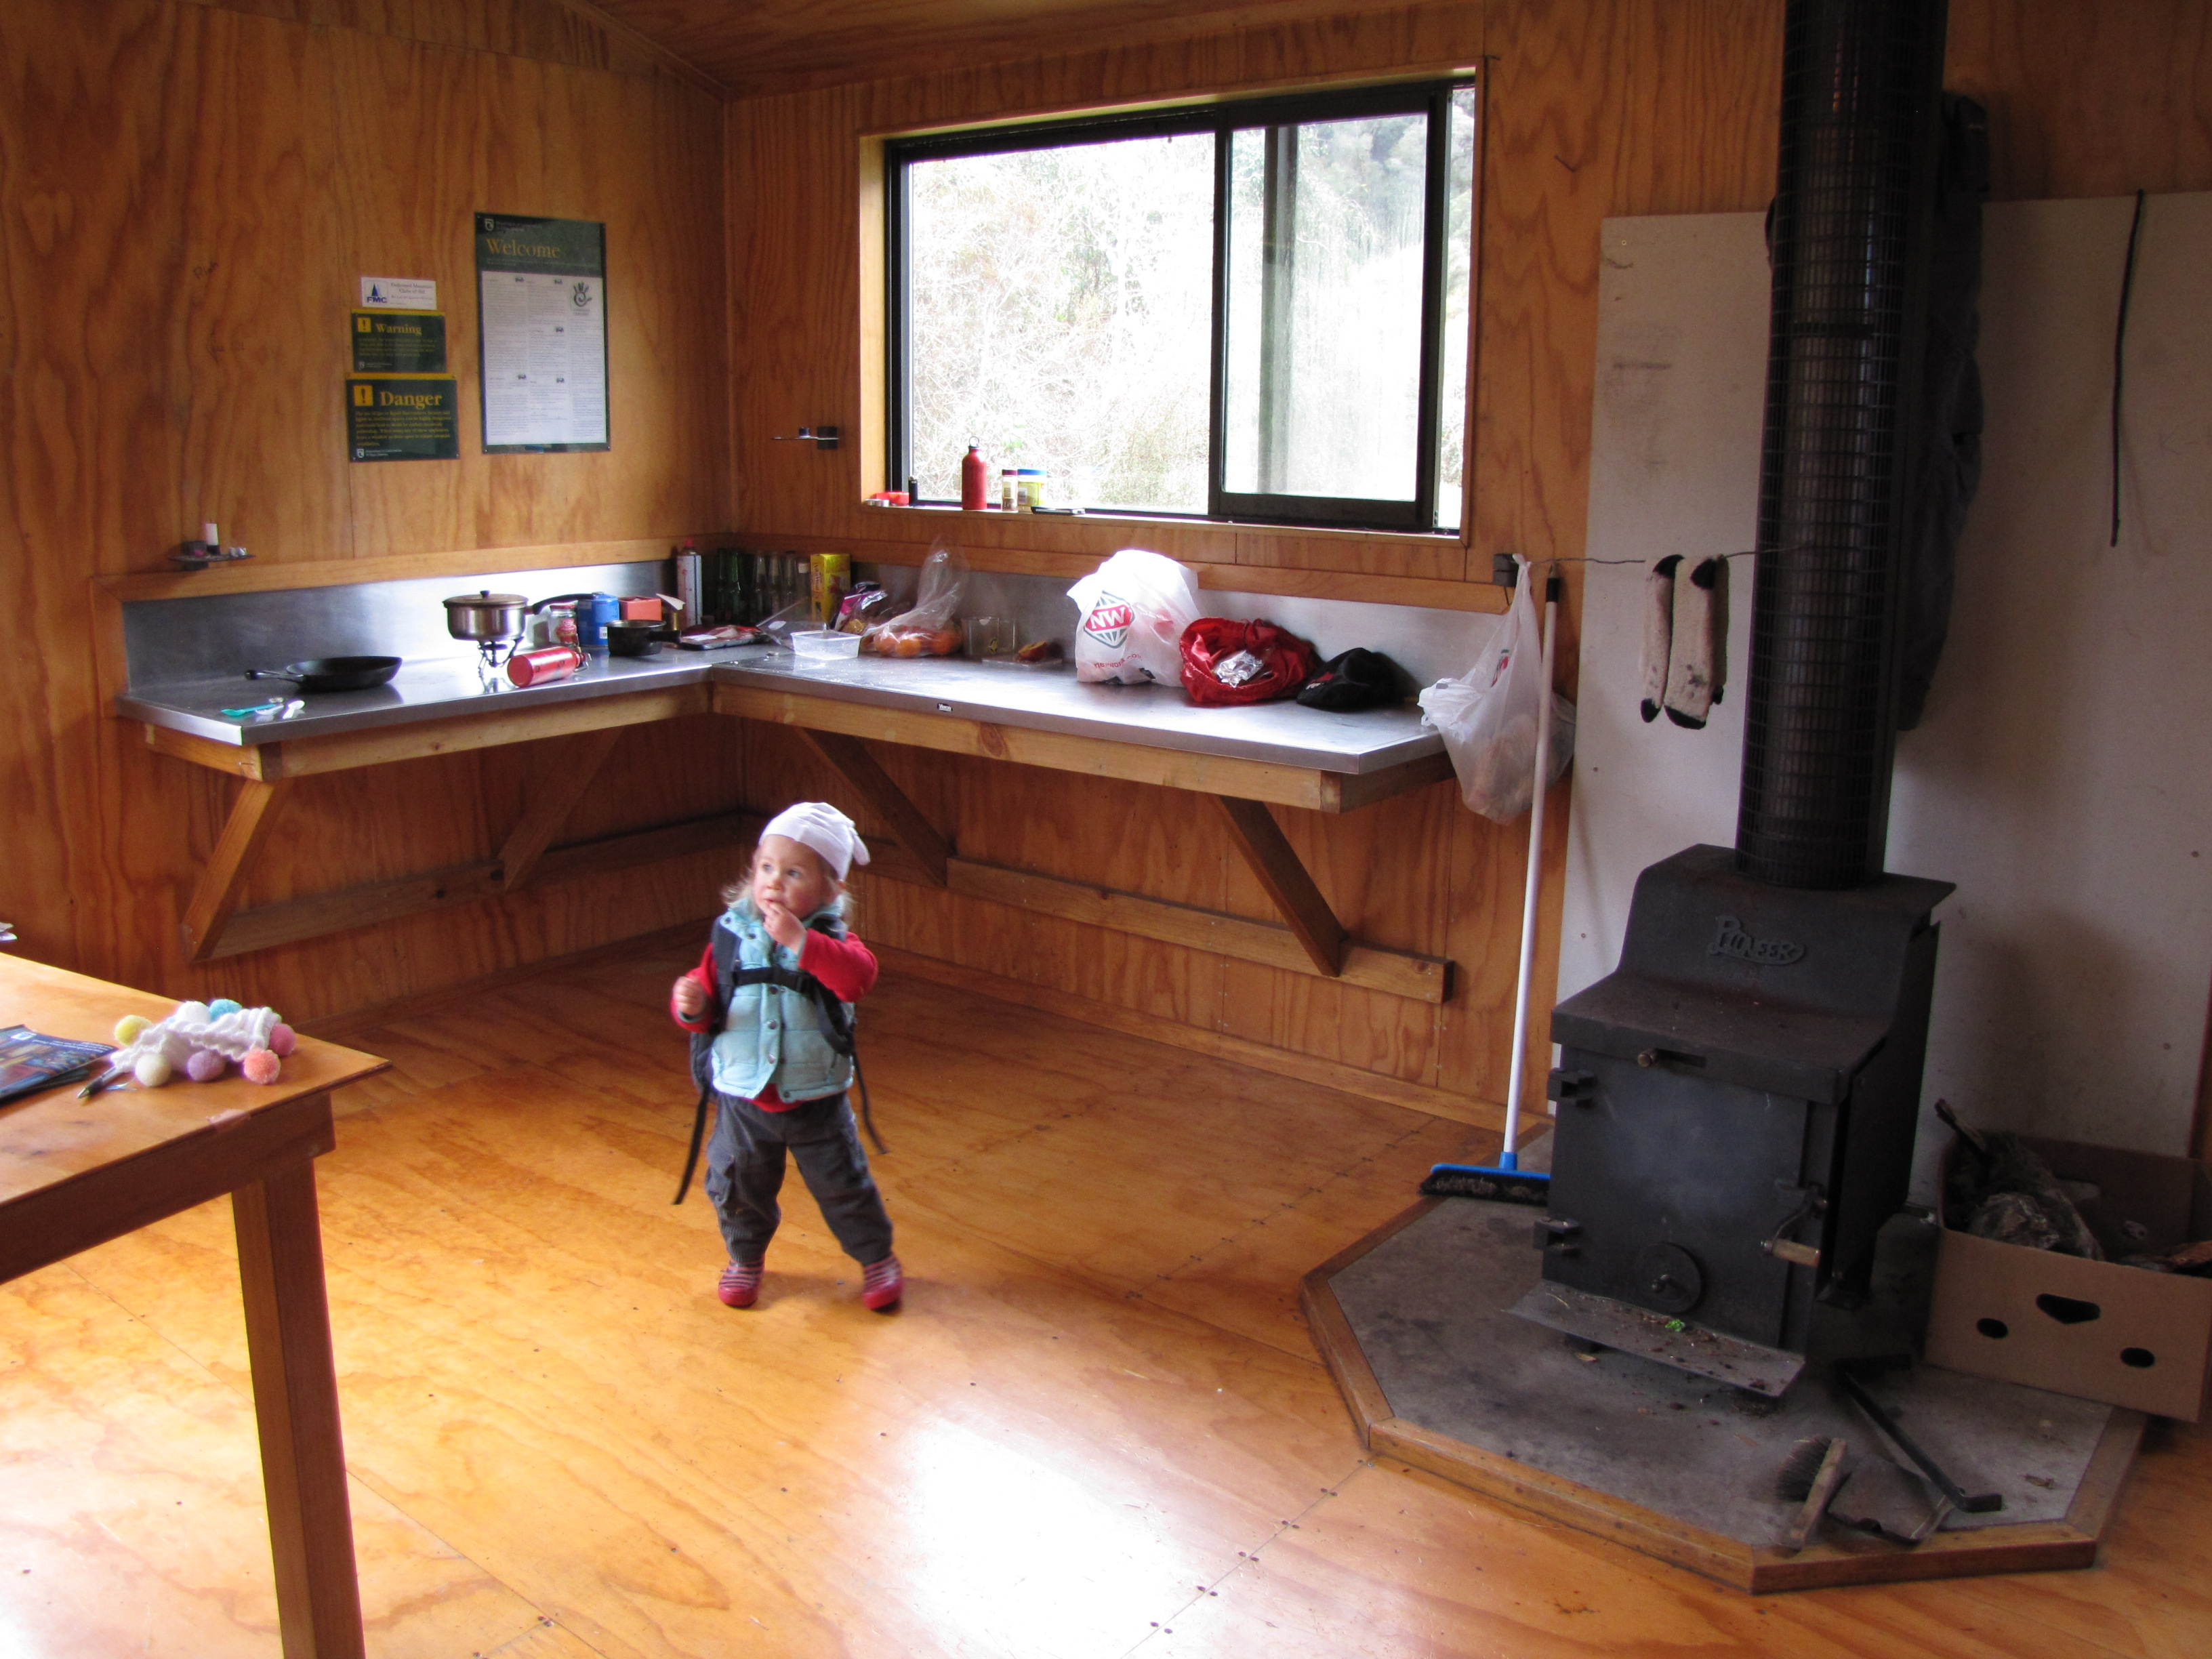 Dillon Hut In The Taipo Valley Is An Absolute Gem For Kids, As Far As Weu0027re  Concerned. Warm, Sandfly Proof, So Clean You Wonu0027t Worry About Your Toddler  ...